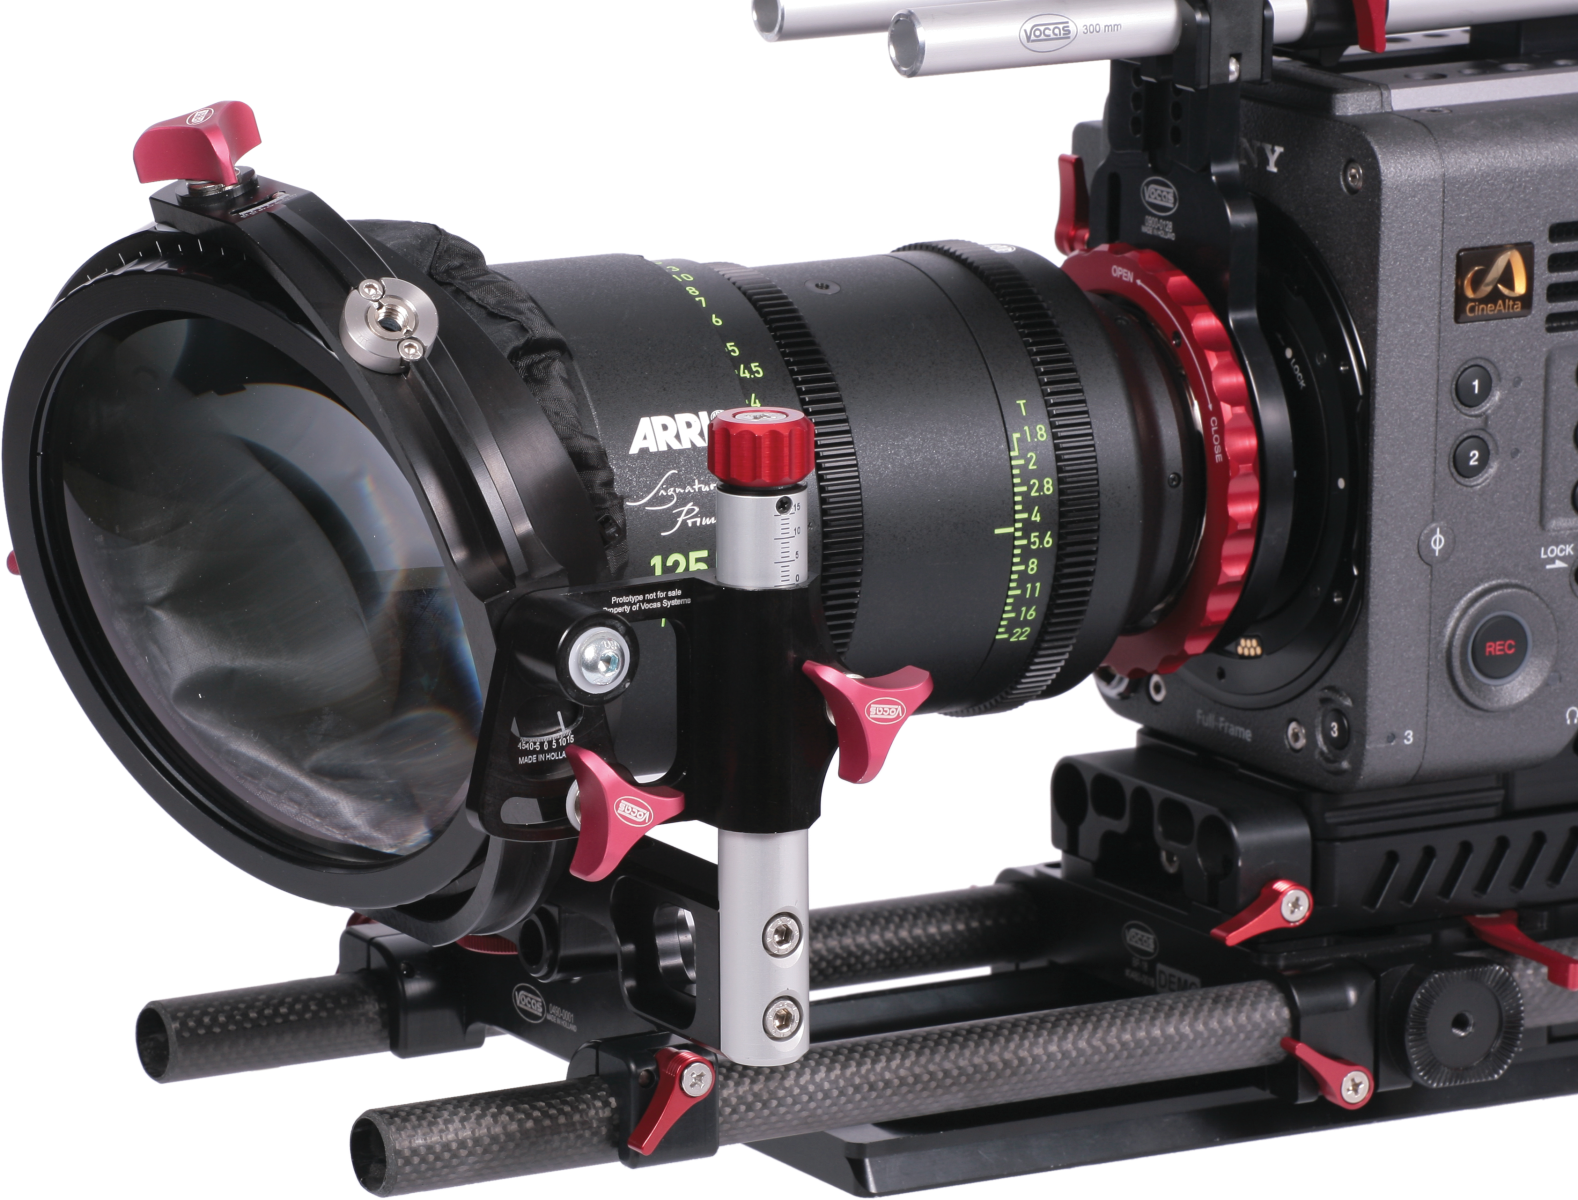 The Guild of Television Camera Professionals : Vocas introduces new